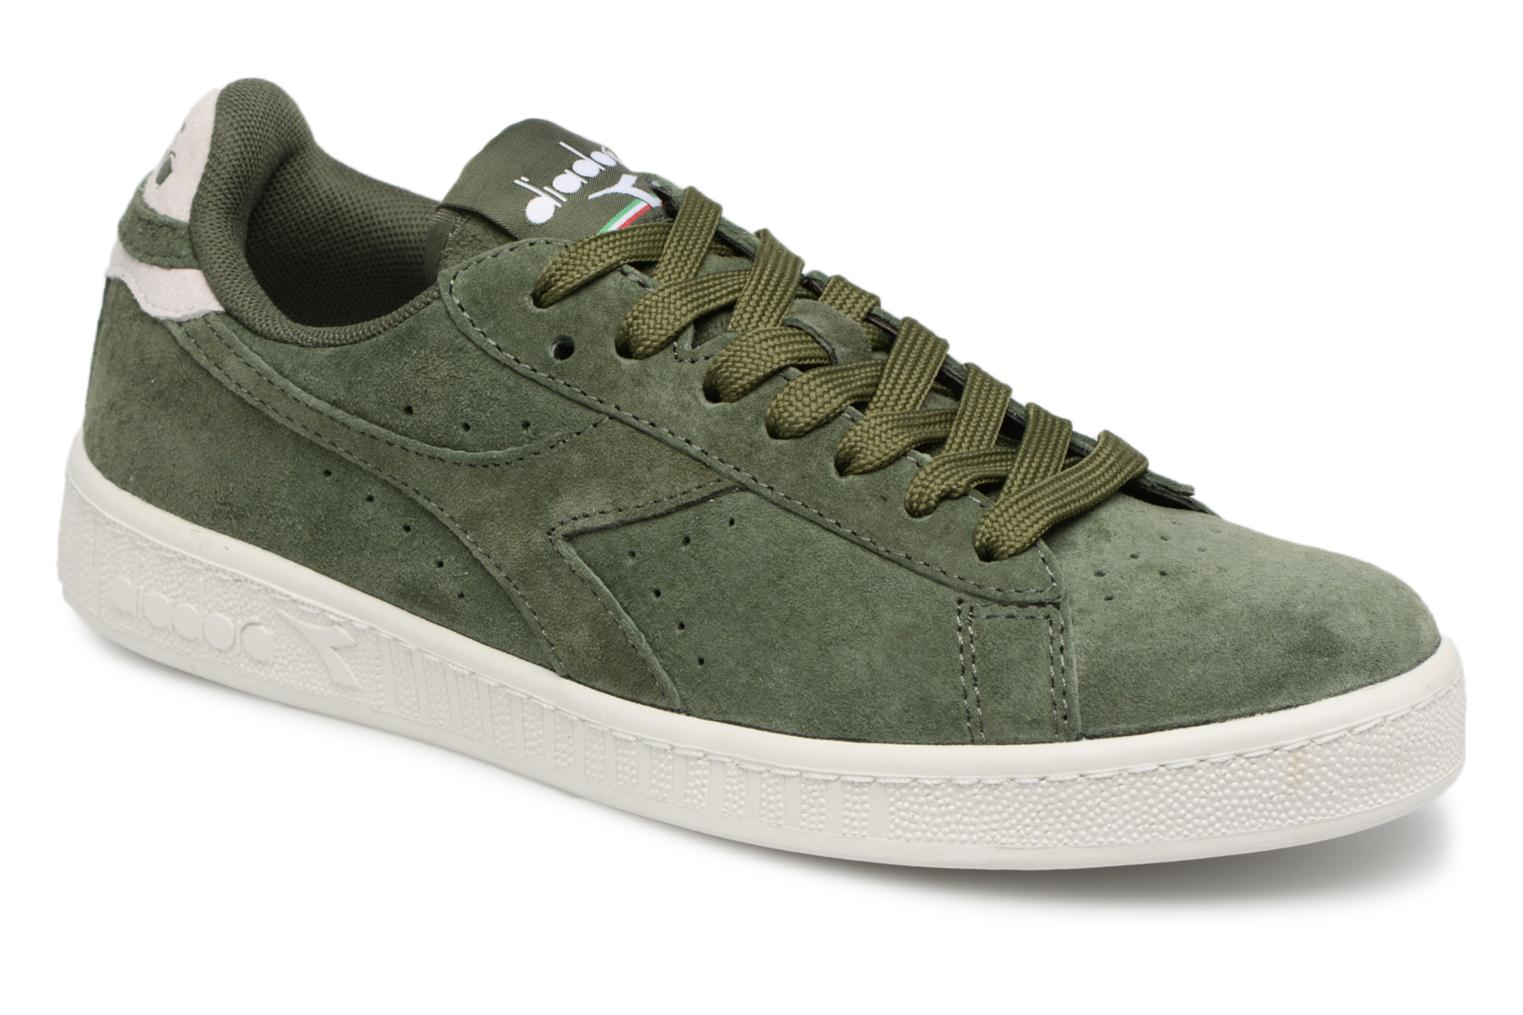 Marques Chaussure homme Diadora homme GAME LOW S VERDE YUCCA